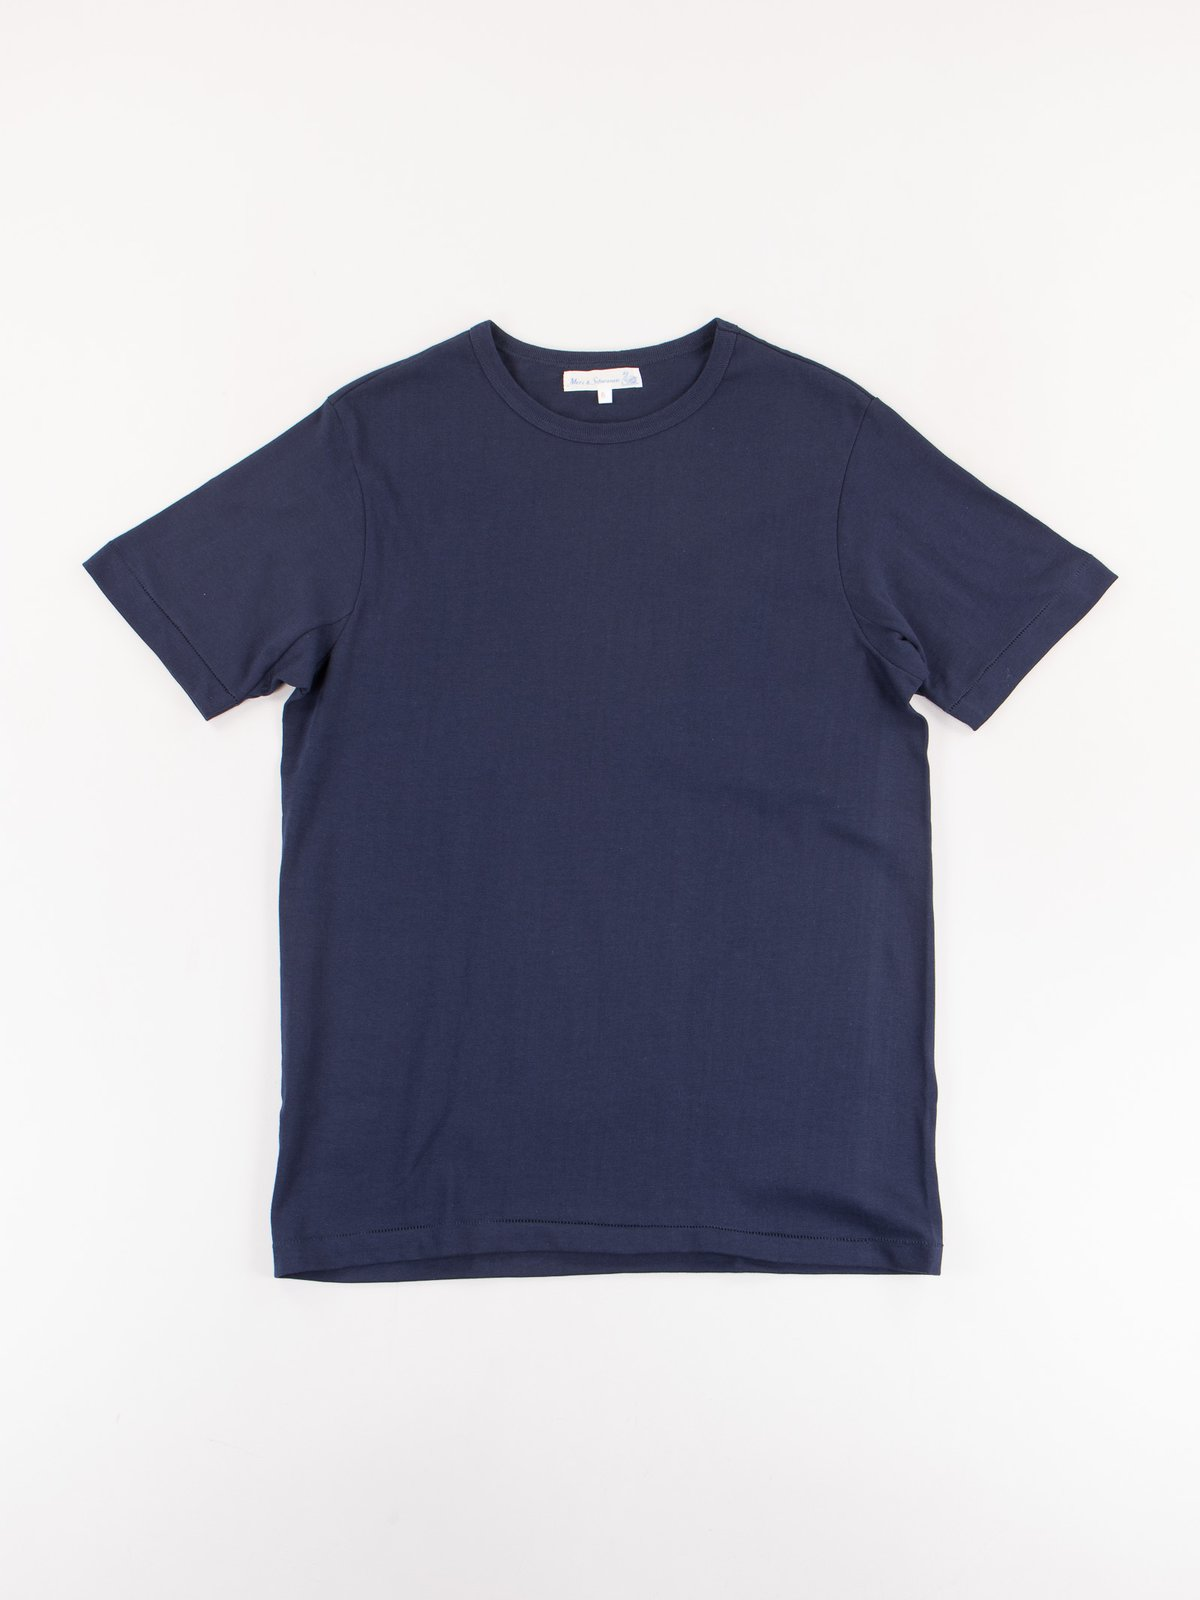 Ink Blue 215 Organic Cotton Army Shirt - Image 1